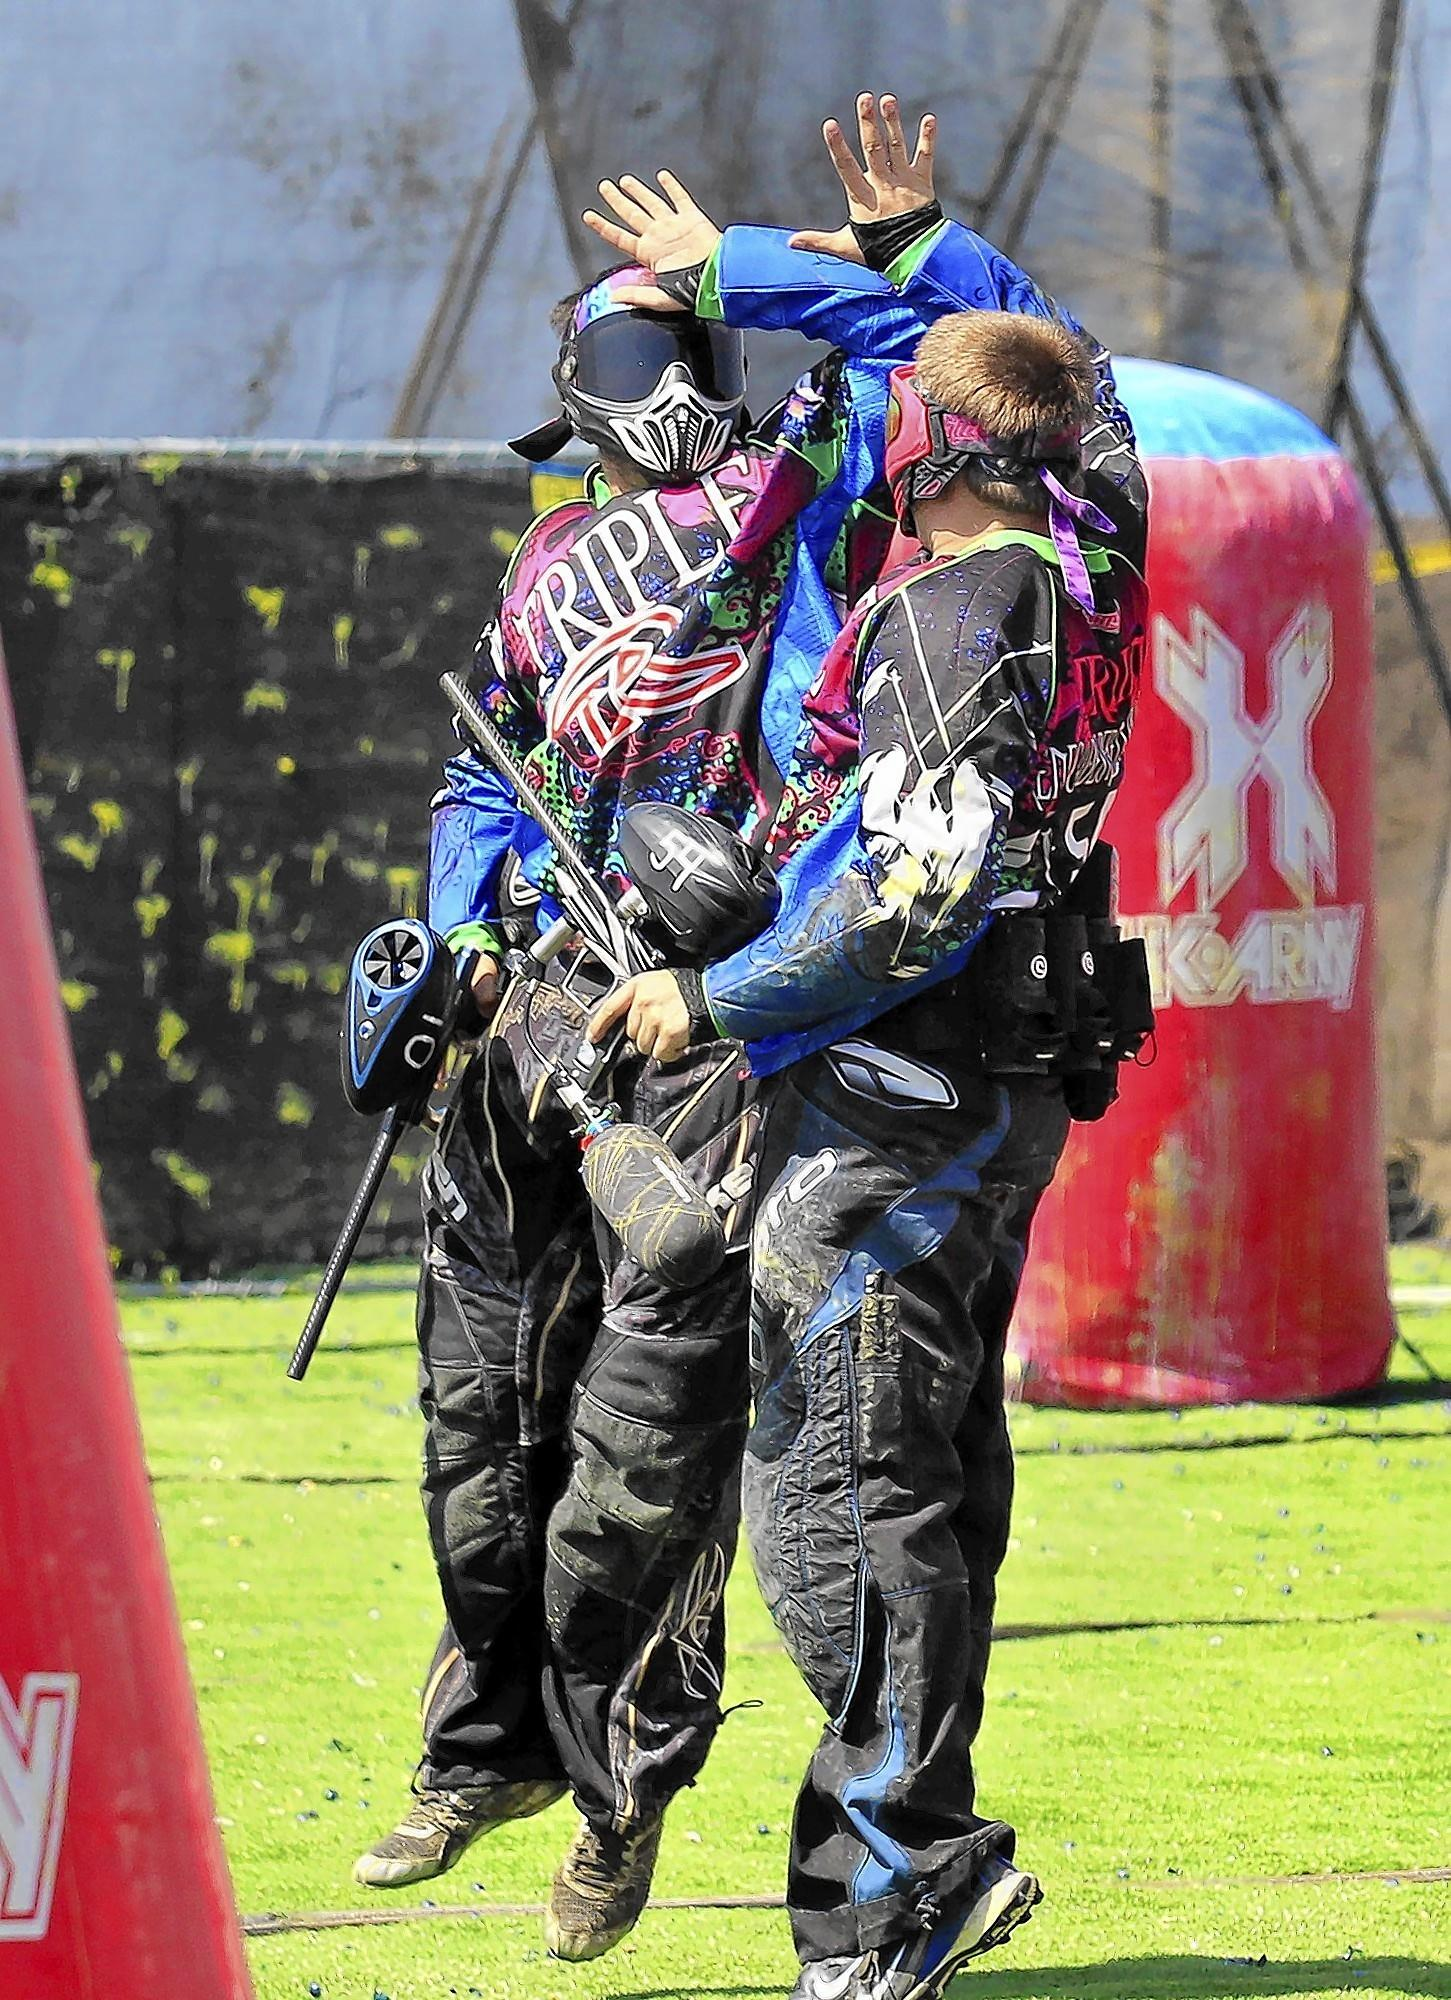 David Mount, left, and Jared Long, right, celebrate after beating opponents Alexander Mitchell and Heather Harvey, not pictured, during a 2 on 2 match at the Surf City Paintball Open near Huntington Beach Pier on Saturday.